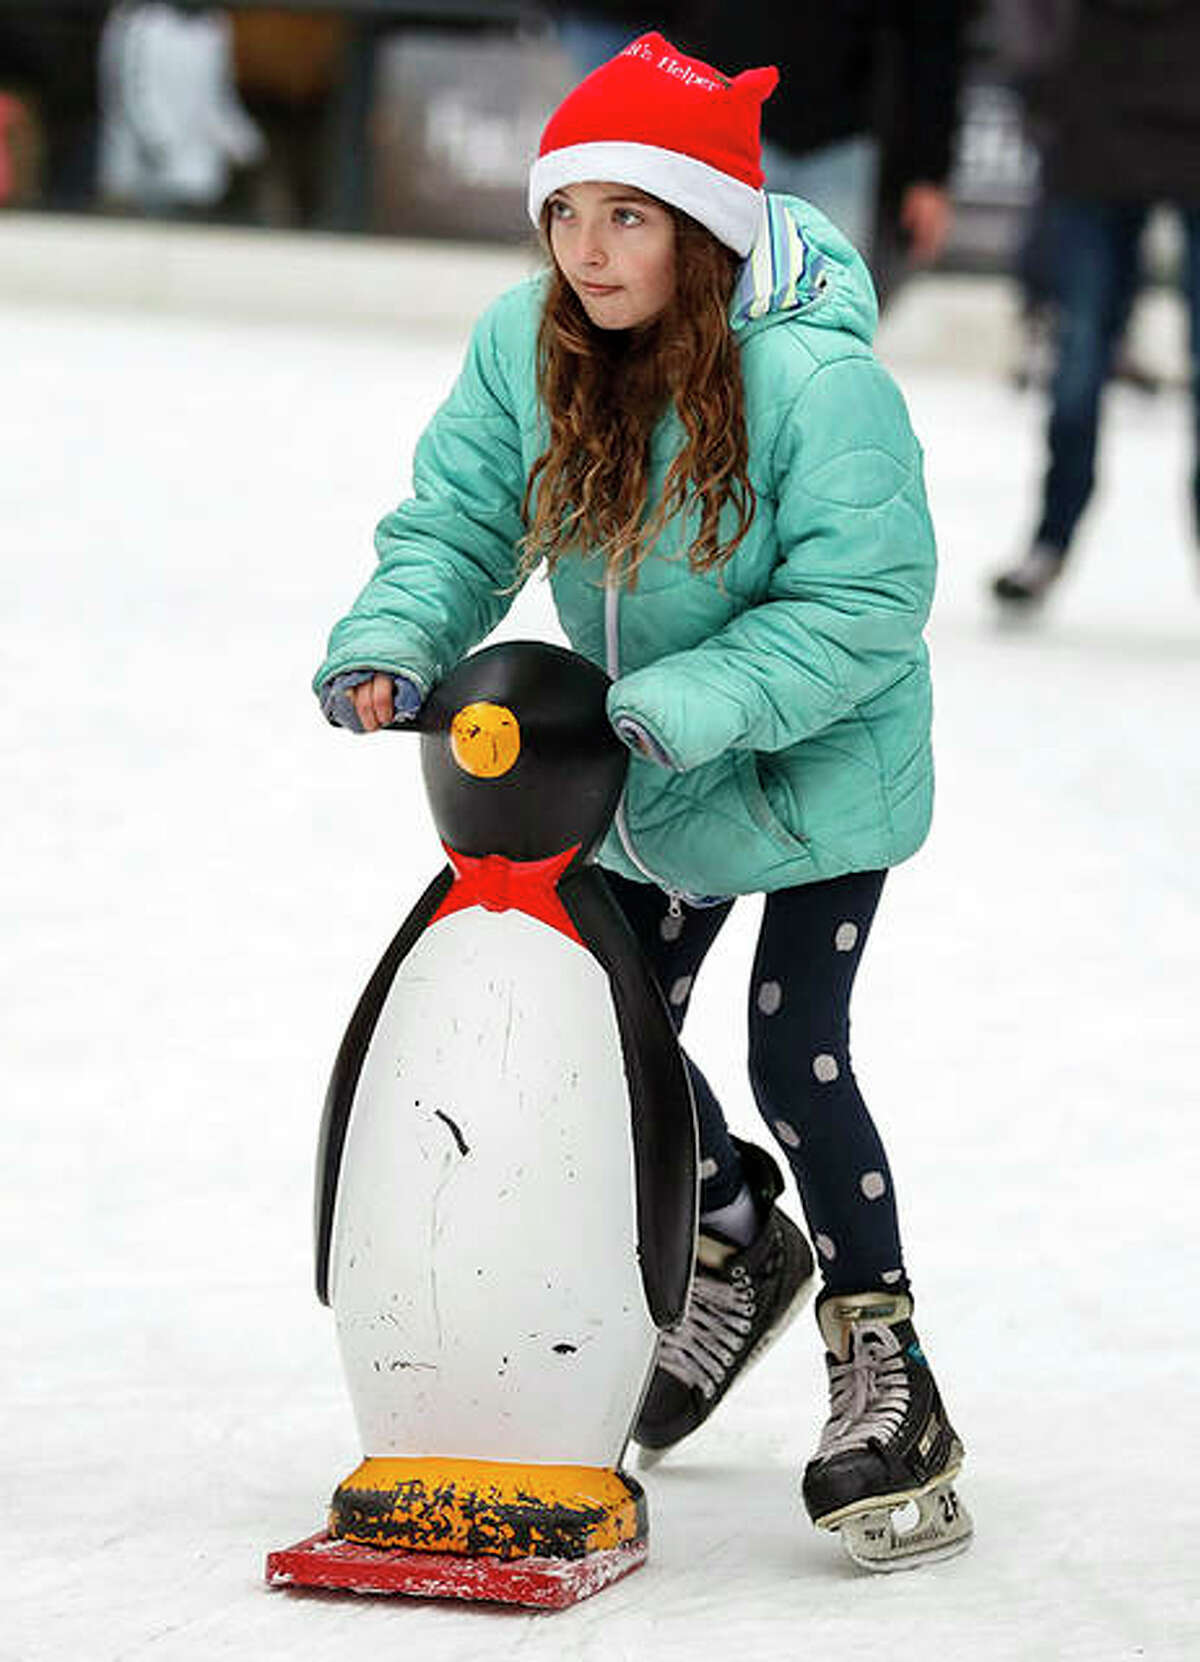 A girl skates at McCormick Tribune Ice Rink in Chicago's Millennium Park. The outdoor ice rink is open through February if weather permits.